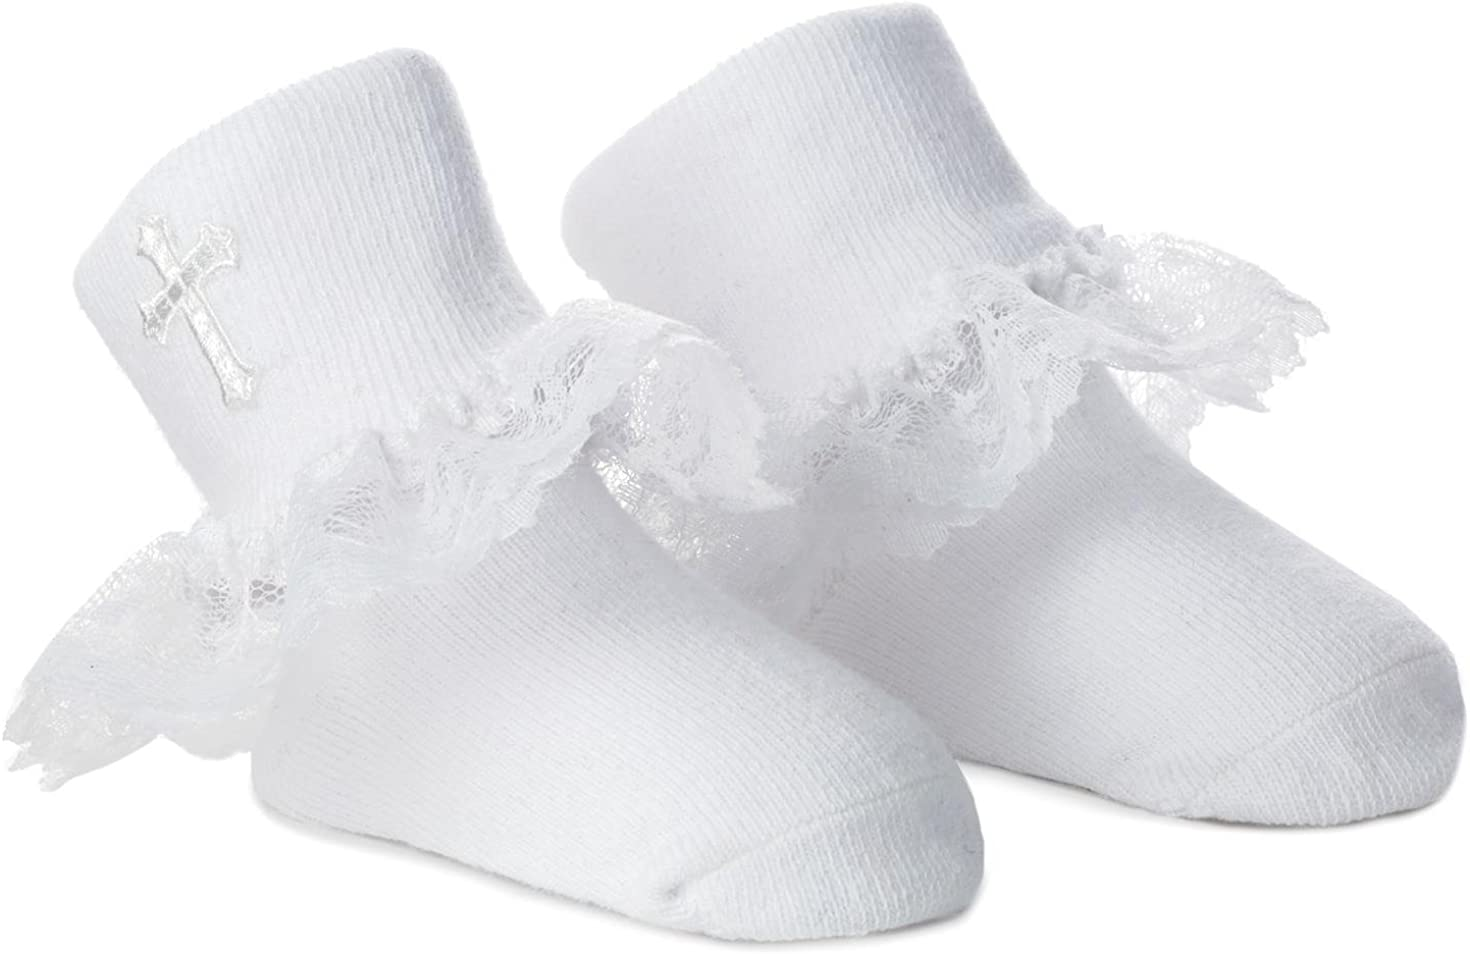 Hallmark Embroidered Cross With Ruffles Baby Socks 0-12 Months